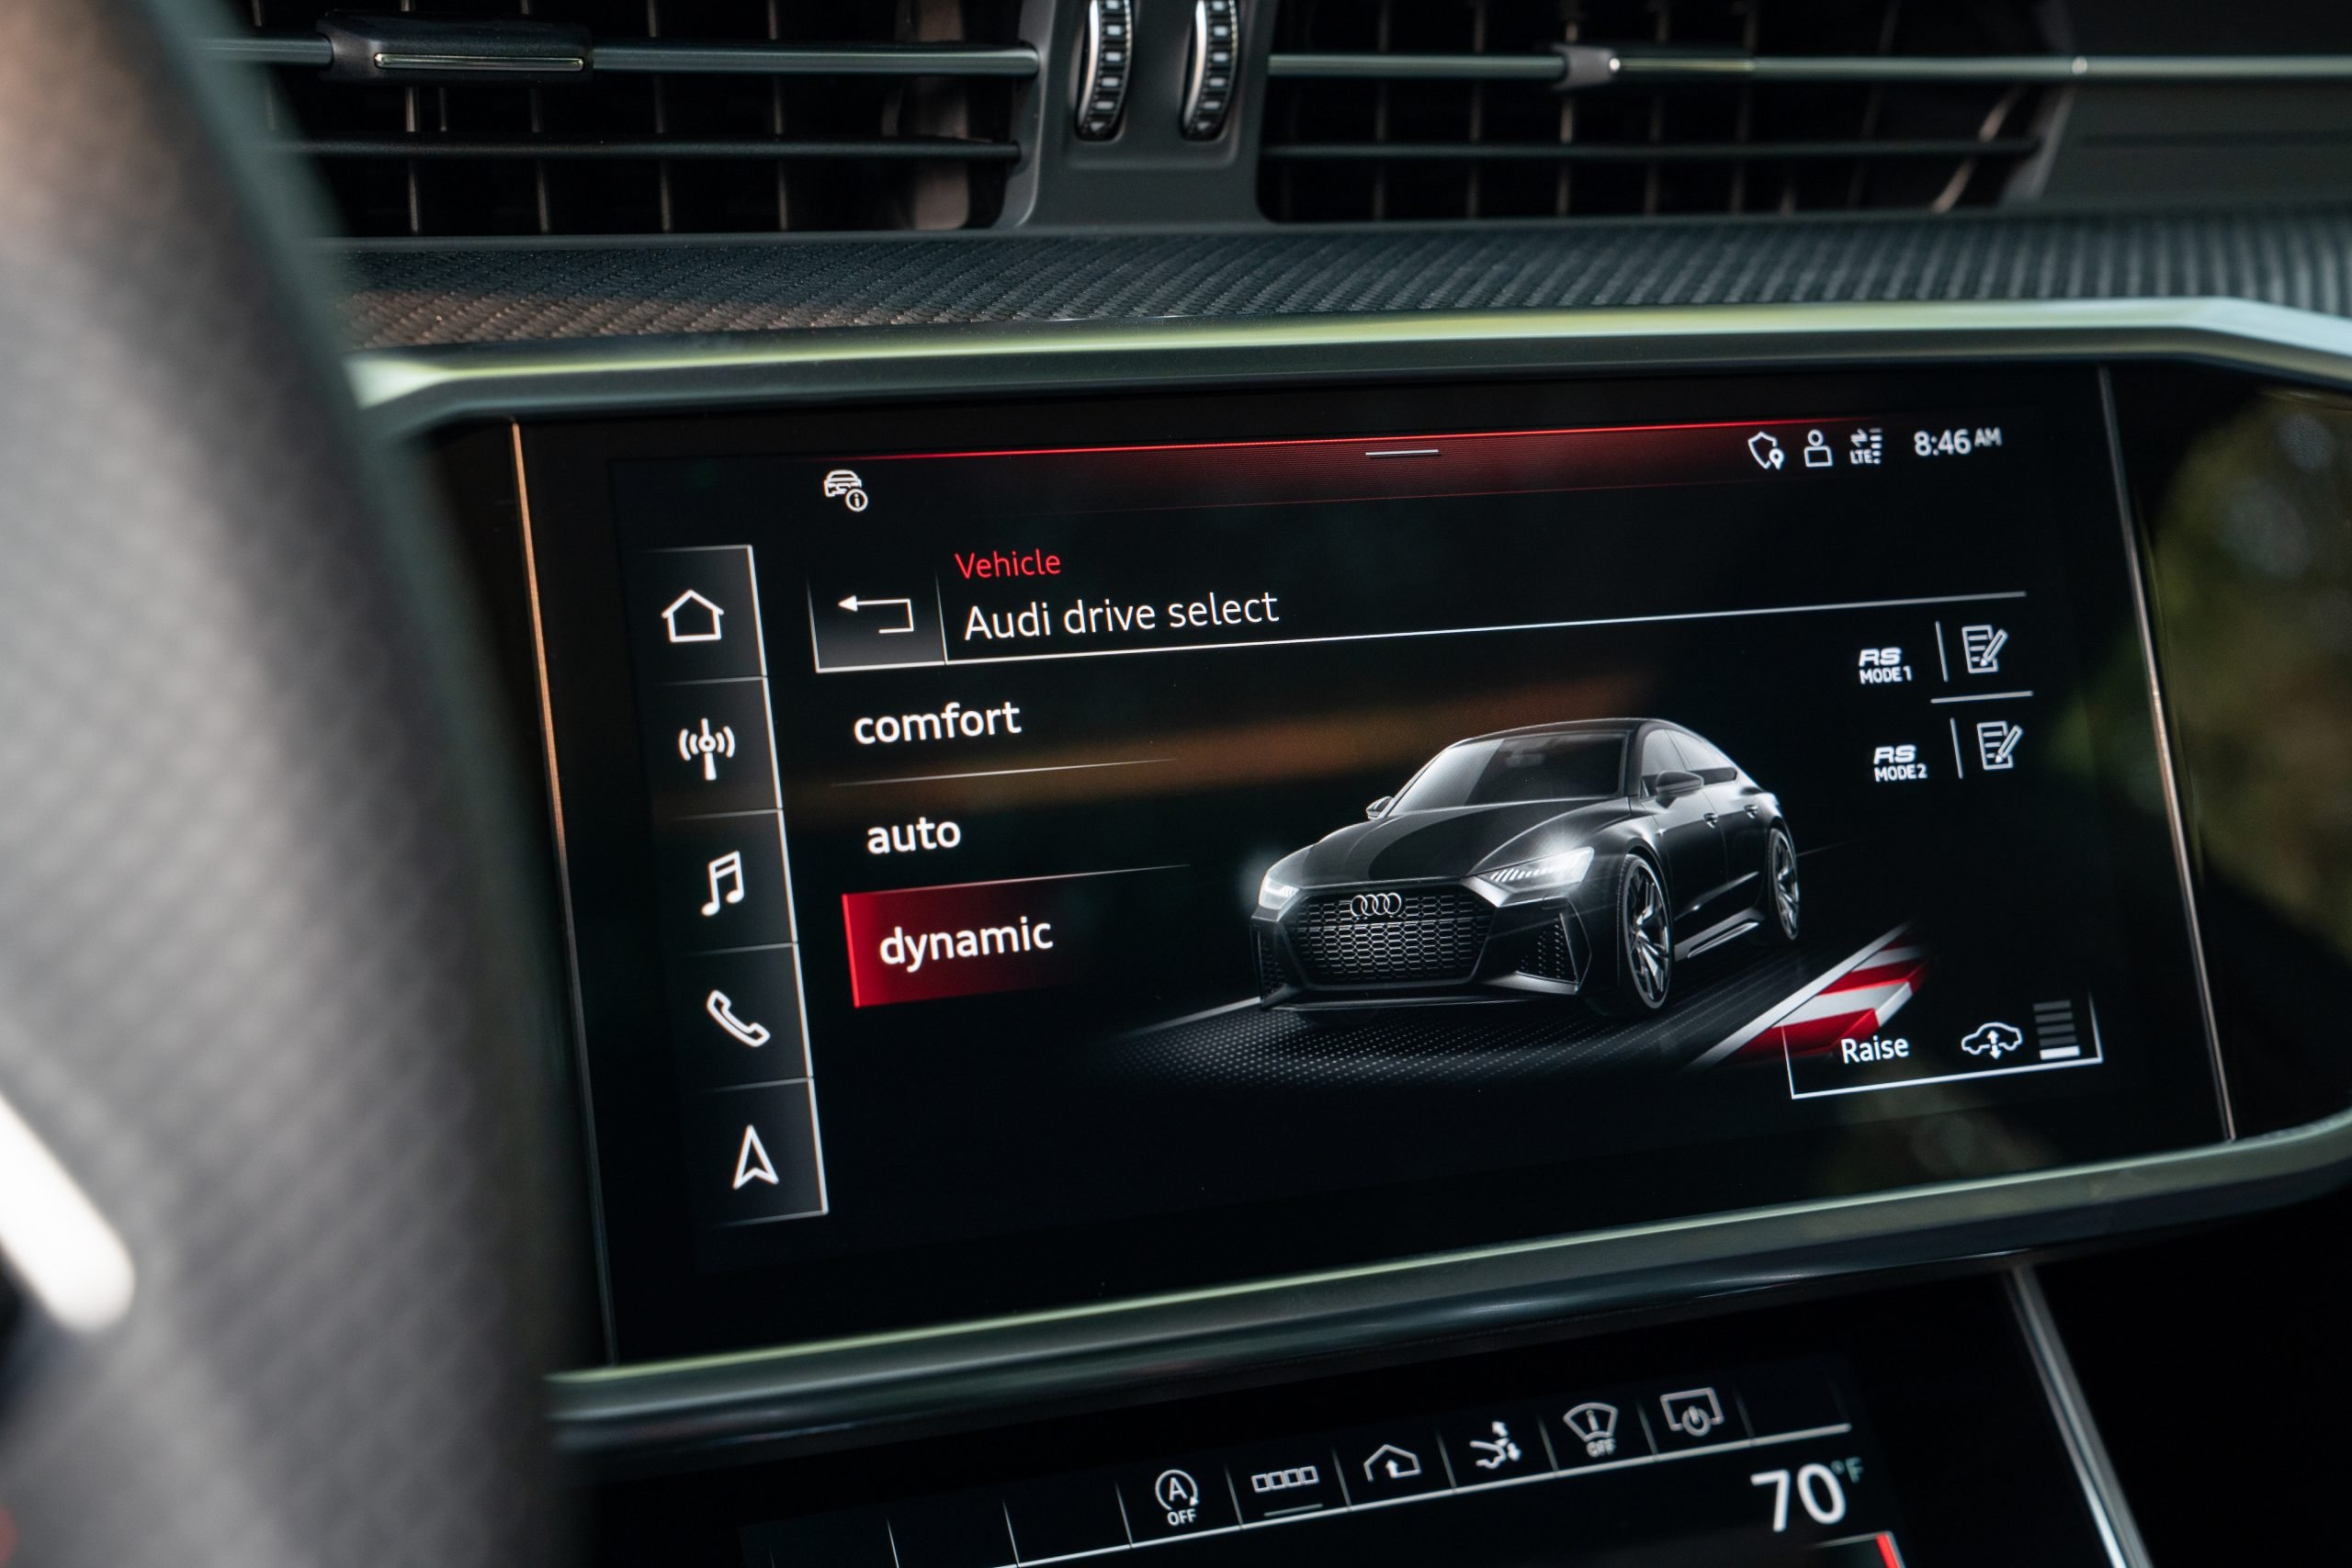 2021 Audi RS7 Center Console Display